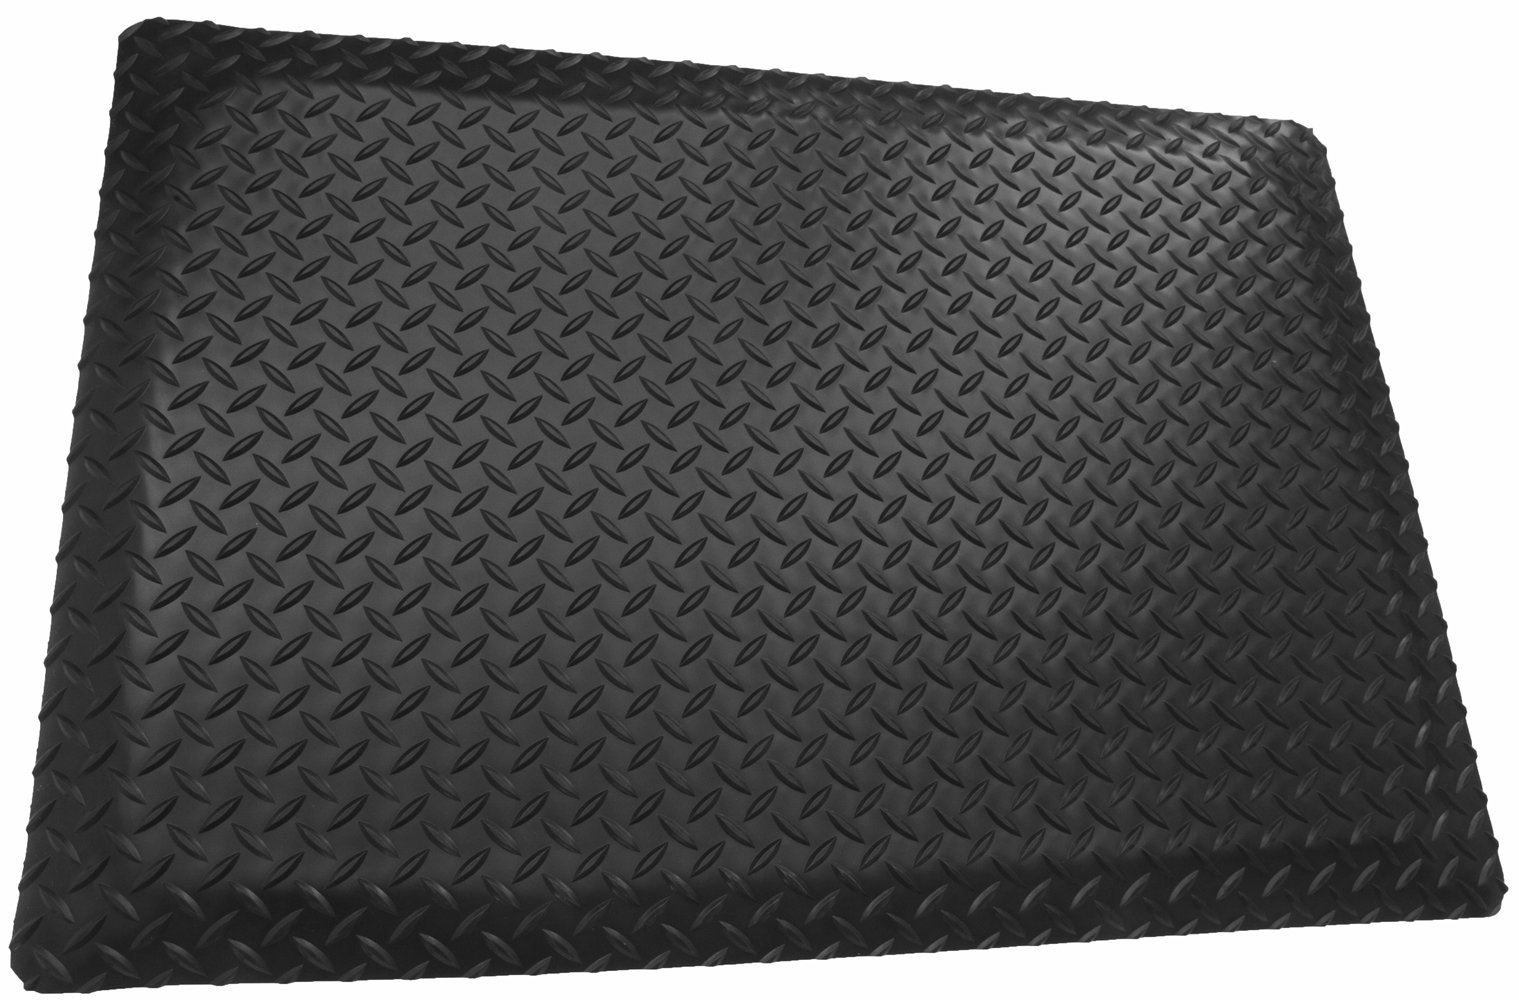 Rhino Mats DTT310DSB Diamond Plate Anti-Fatigue Mat, 3' Width x 10' Length x 1'' Thickness, Black